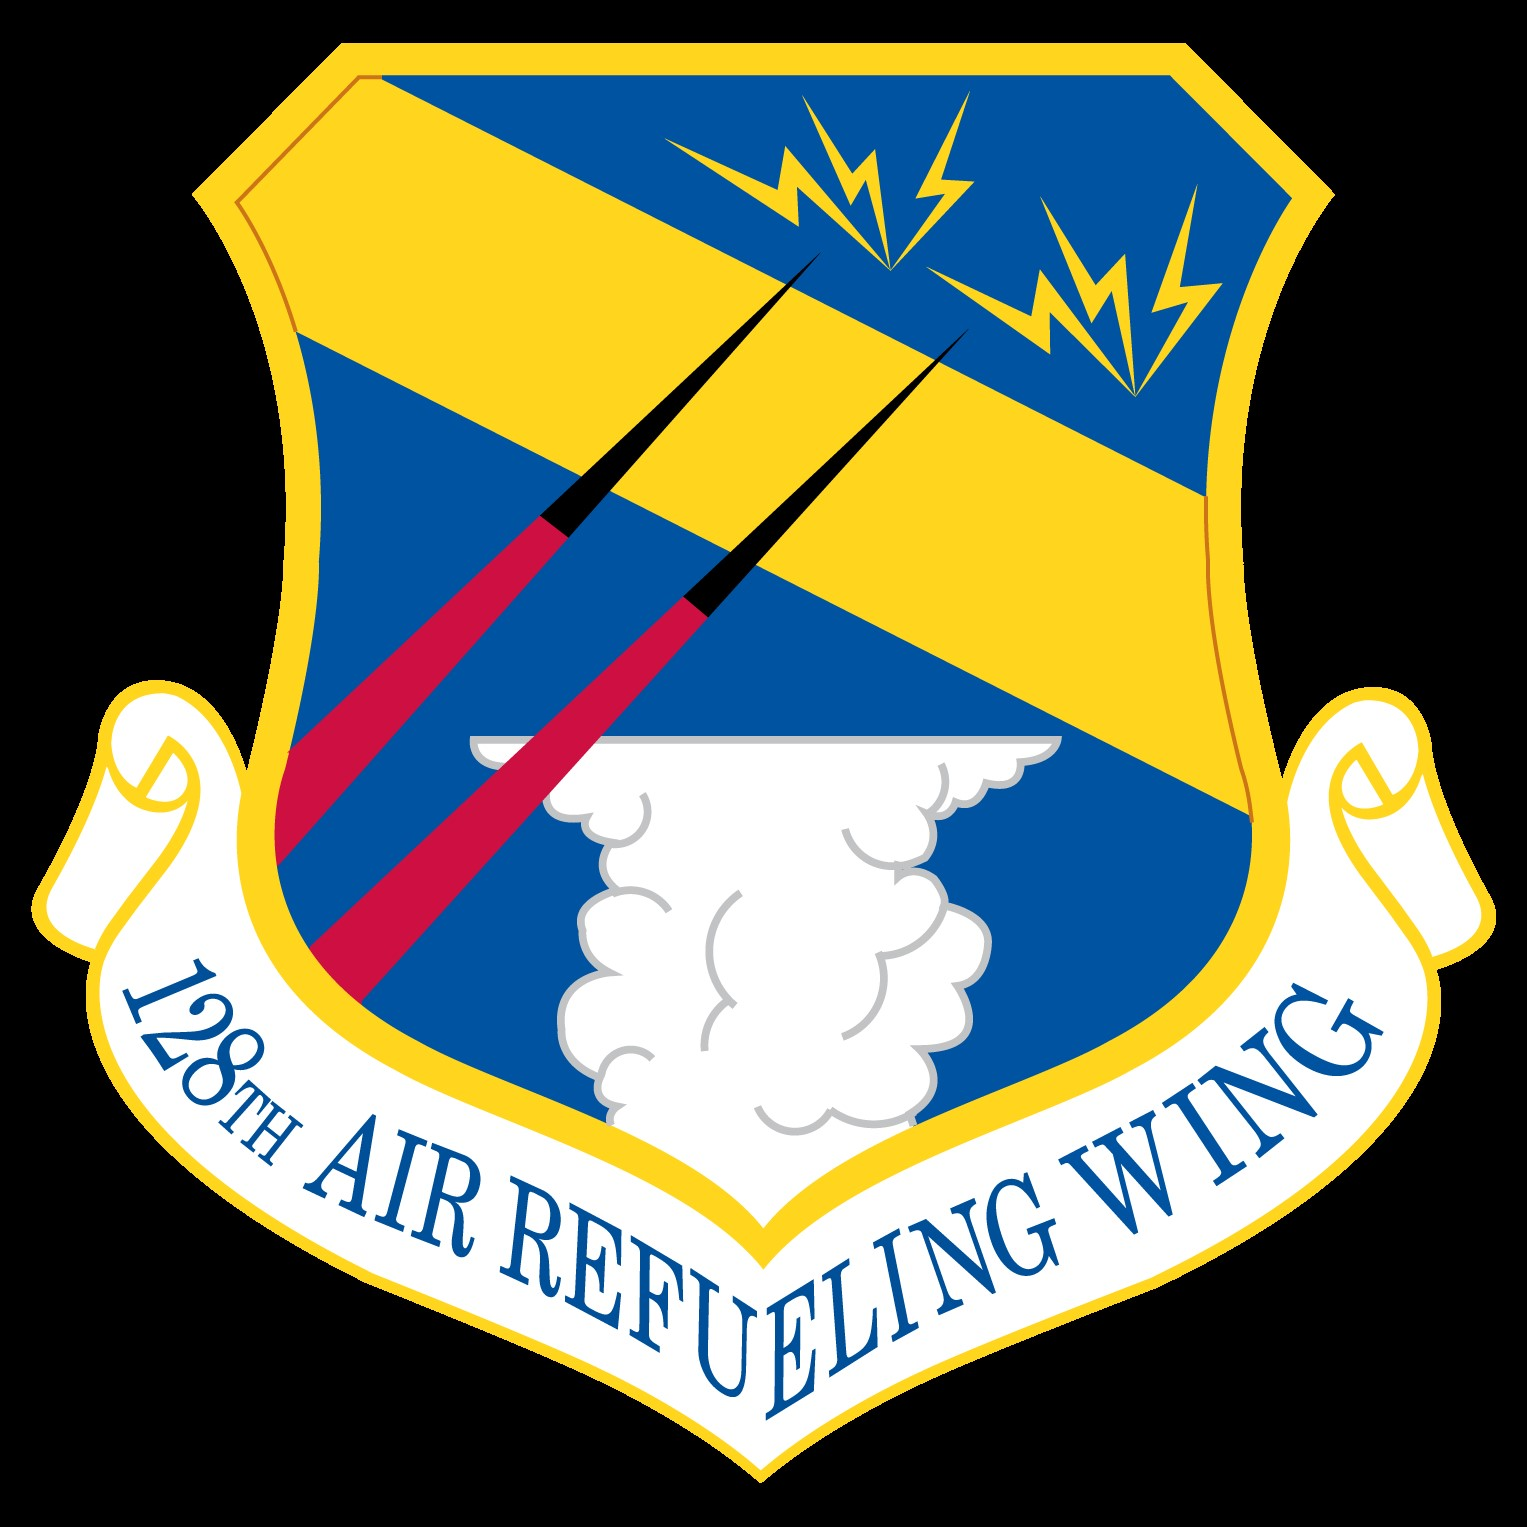 128 ARW Wing Safety Program Assessment and Facility Inspection